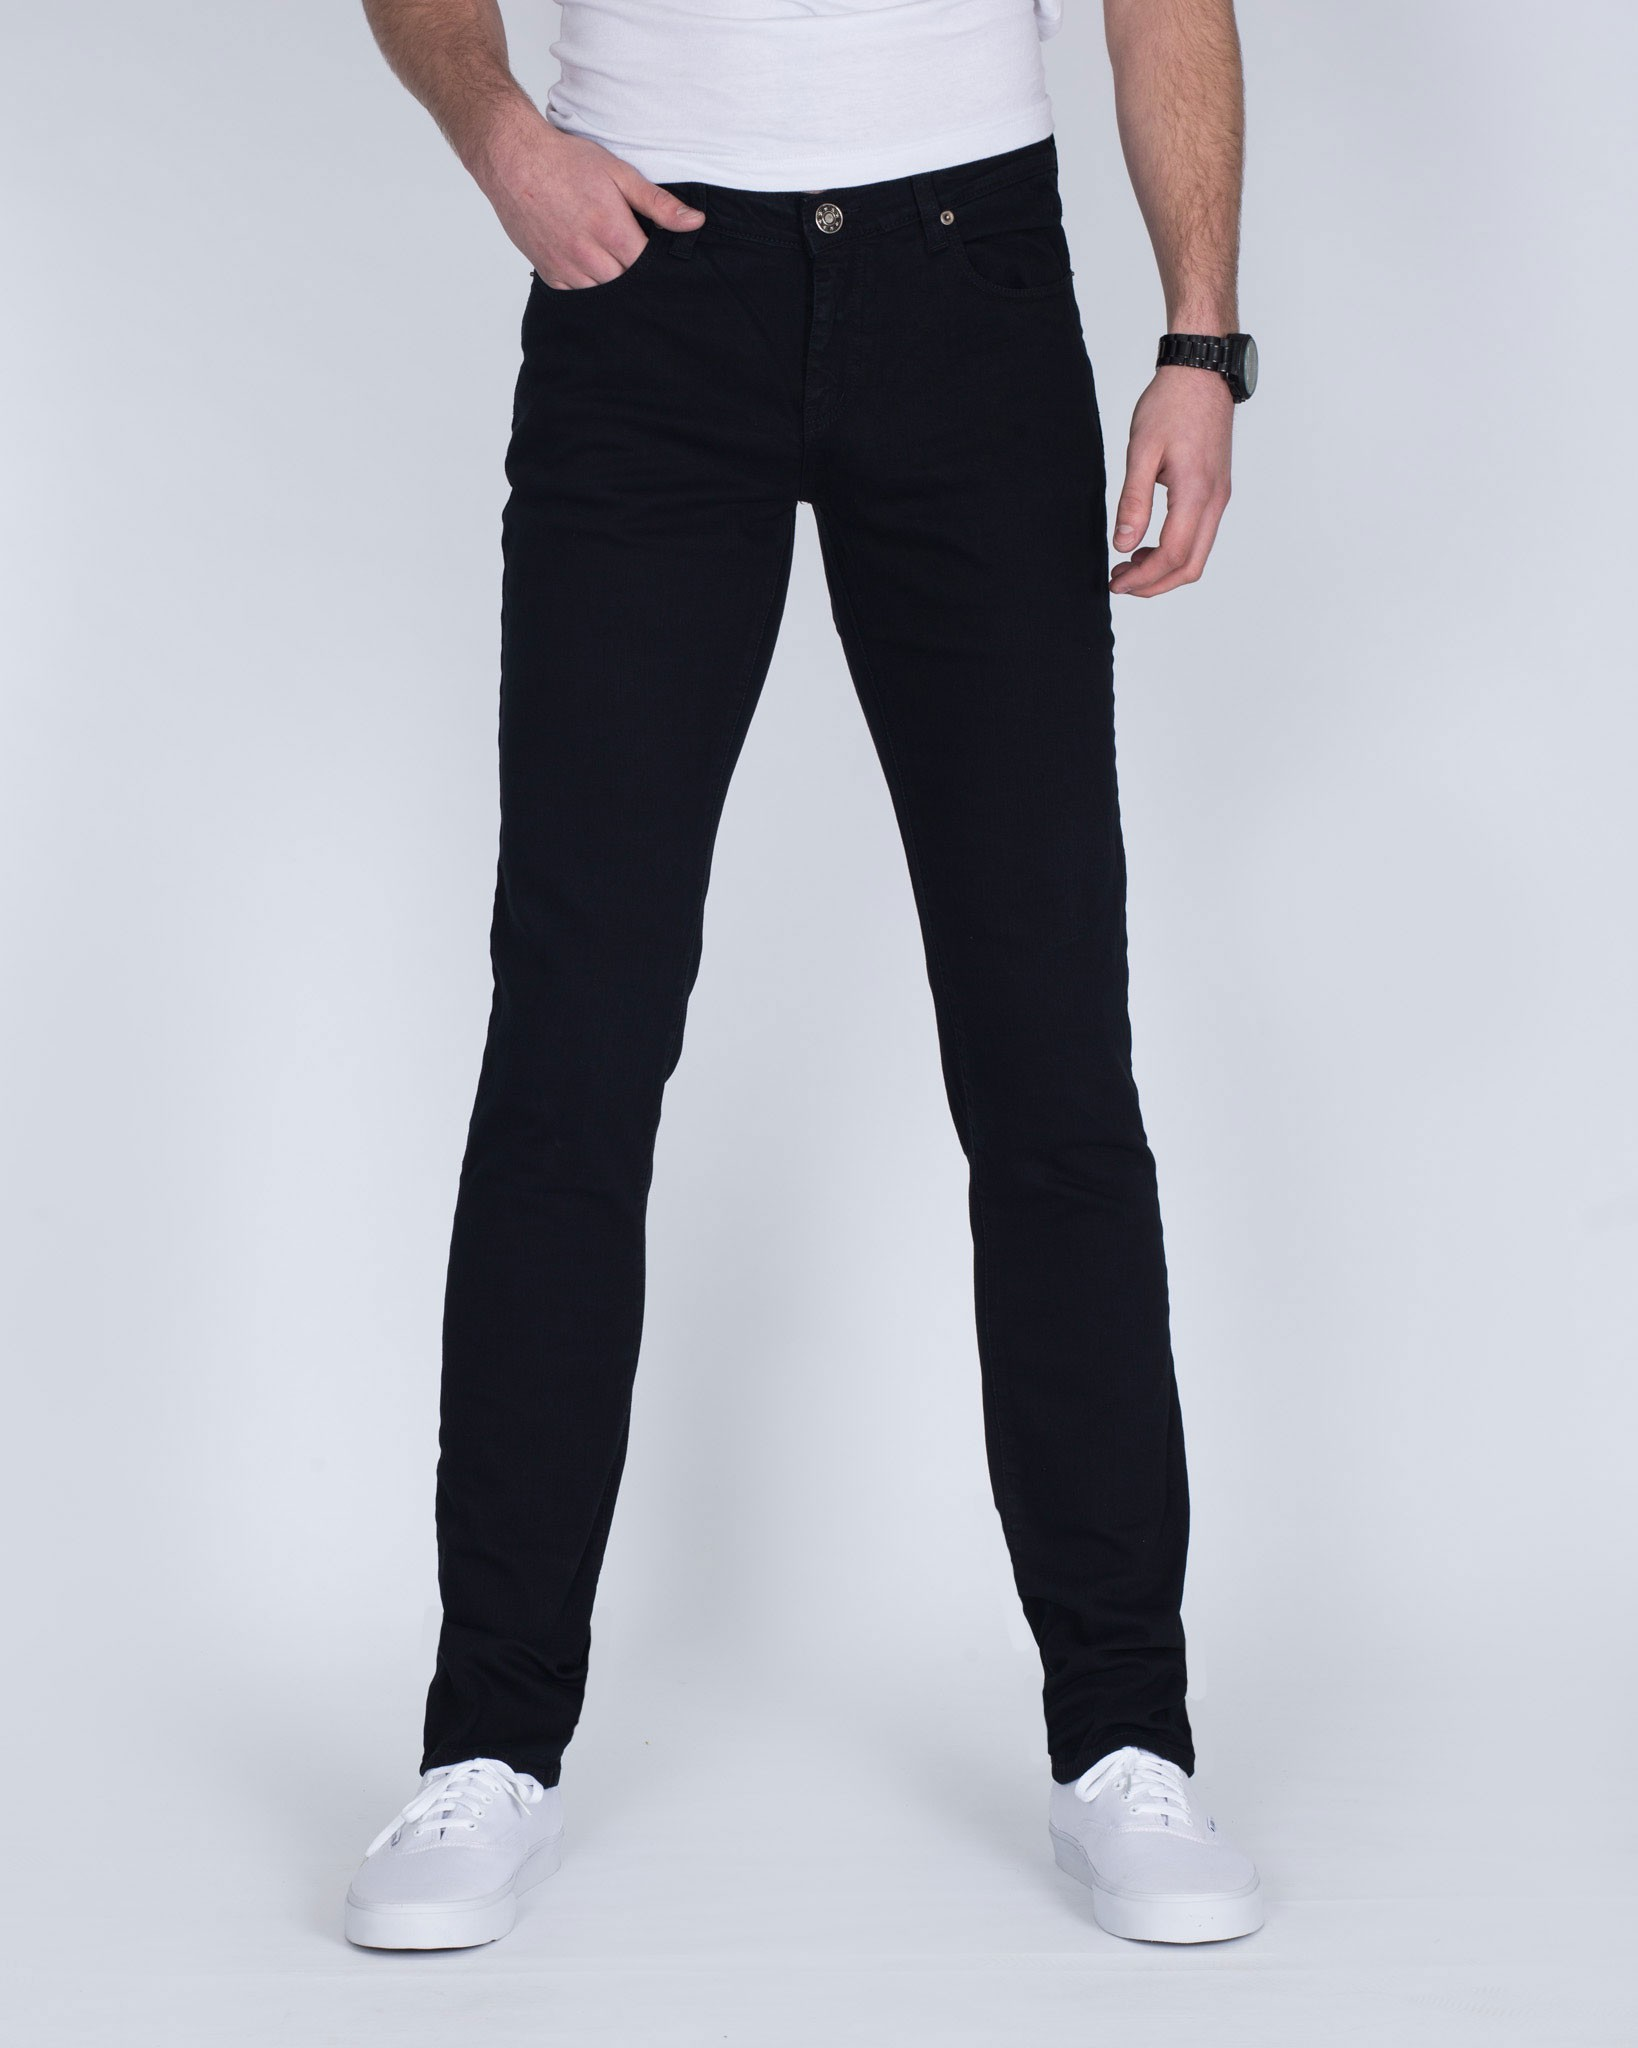 2tall-exclusive-black-front